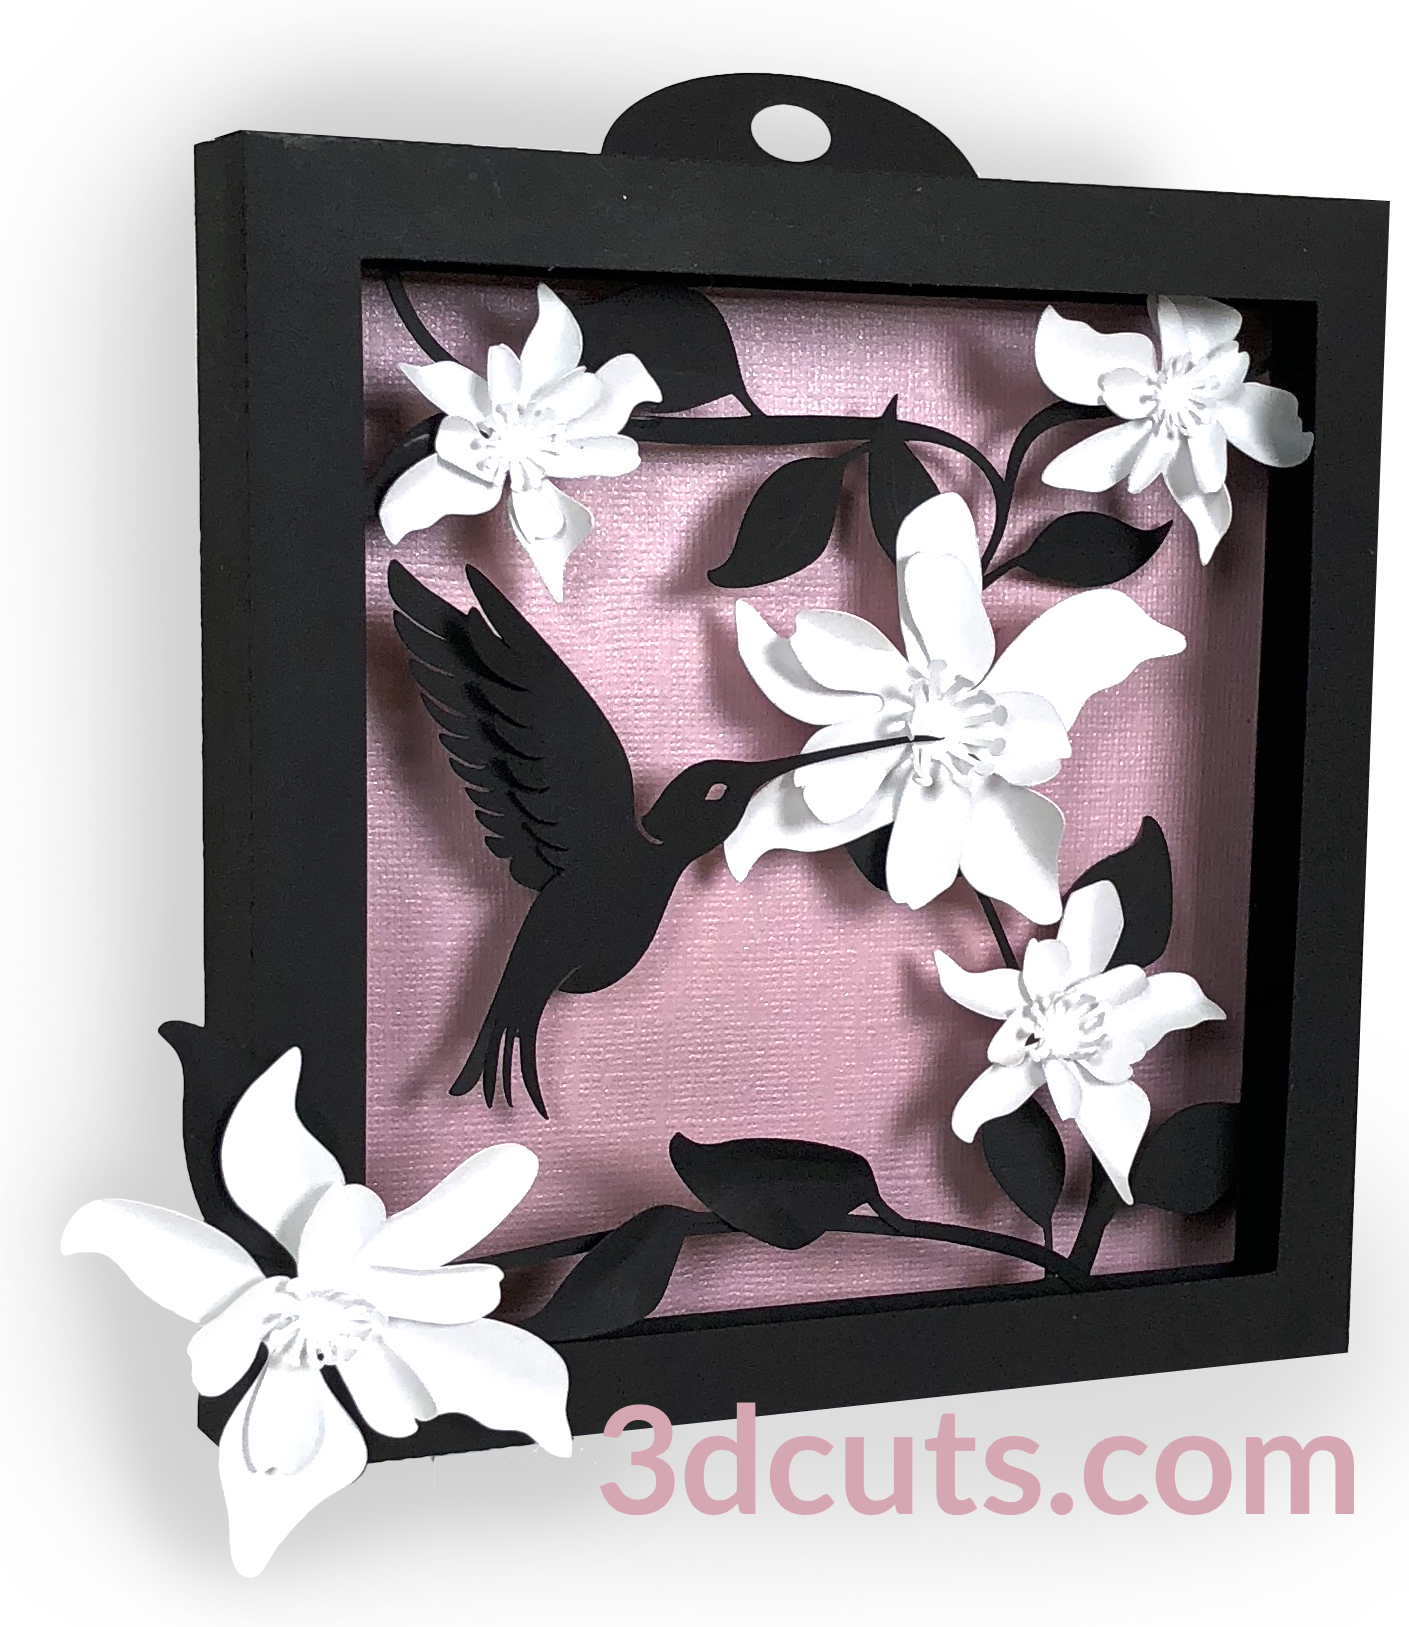 Hummingbird Shadow Box by 3dCuts.com,by Marji Roy, Cutting files in .svg, .dxf, png and .pdf formats for use with Silhouette, Cricut and Brother cutting machines, paper crafting files,SVG Files